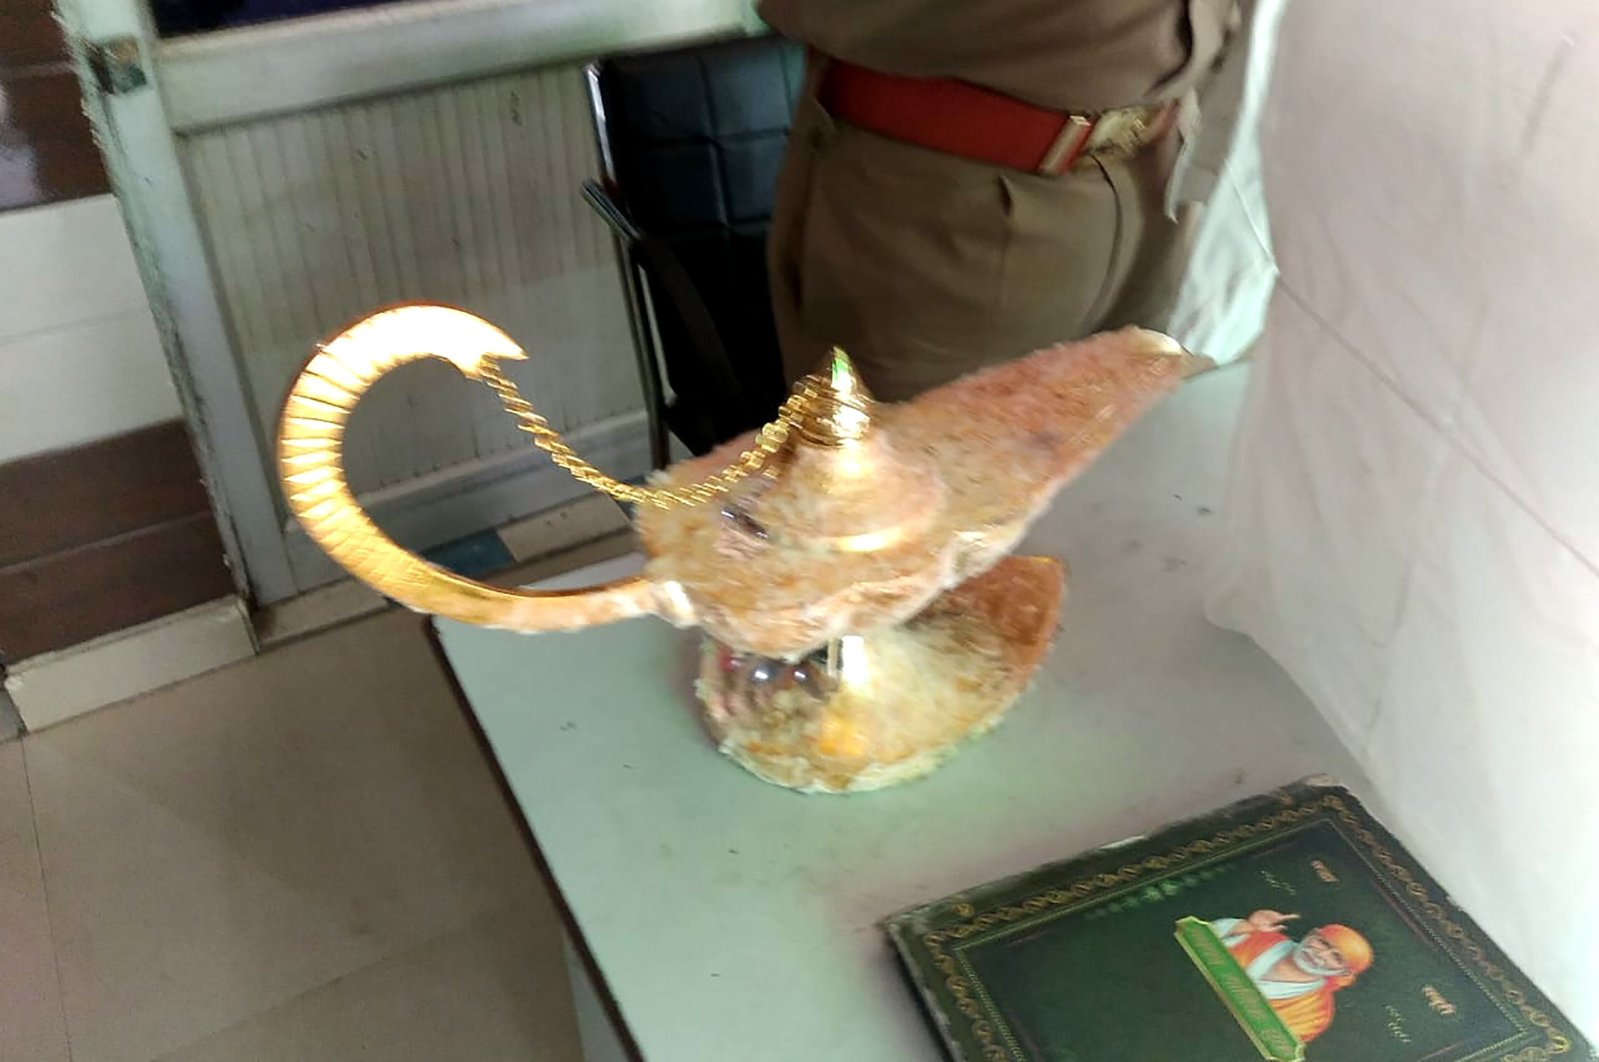 """The lamp that was allegedly sold for $93,000 with the claim that it had magical powers, as described in the popular folk tale """"Aladdin,"""" at the Brahampuri police station in New Delhi, Oct. 29, 2020. (Uttar Pradesh Police Photo via AFP)"""